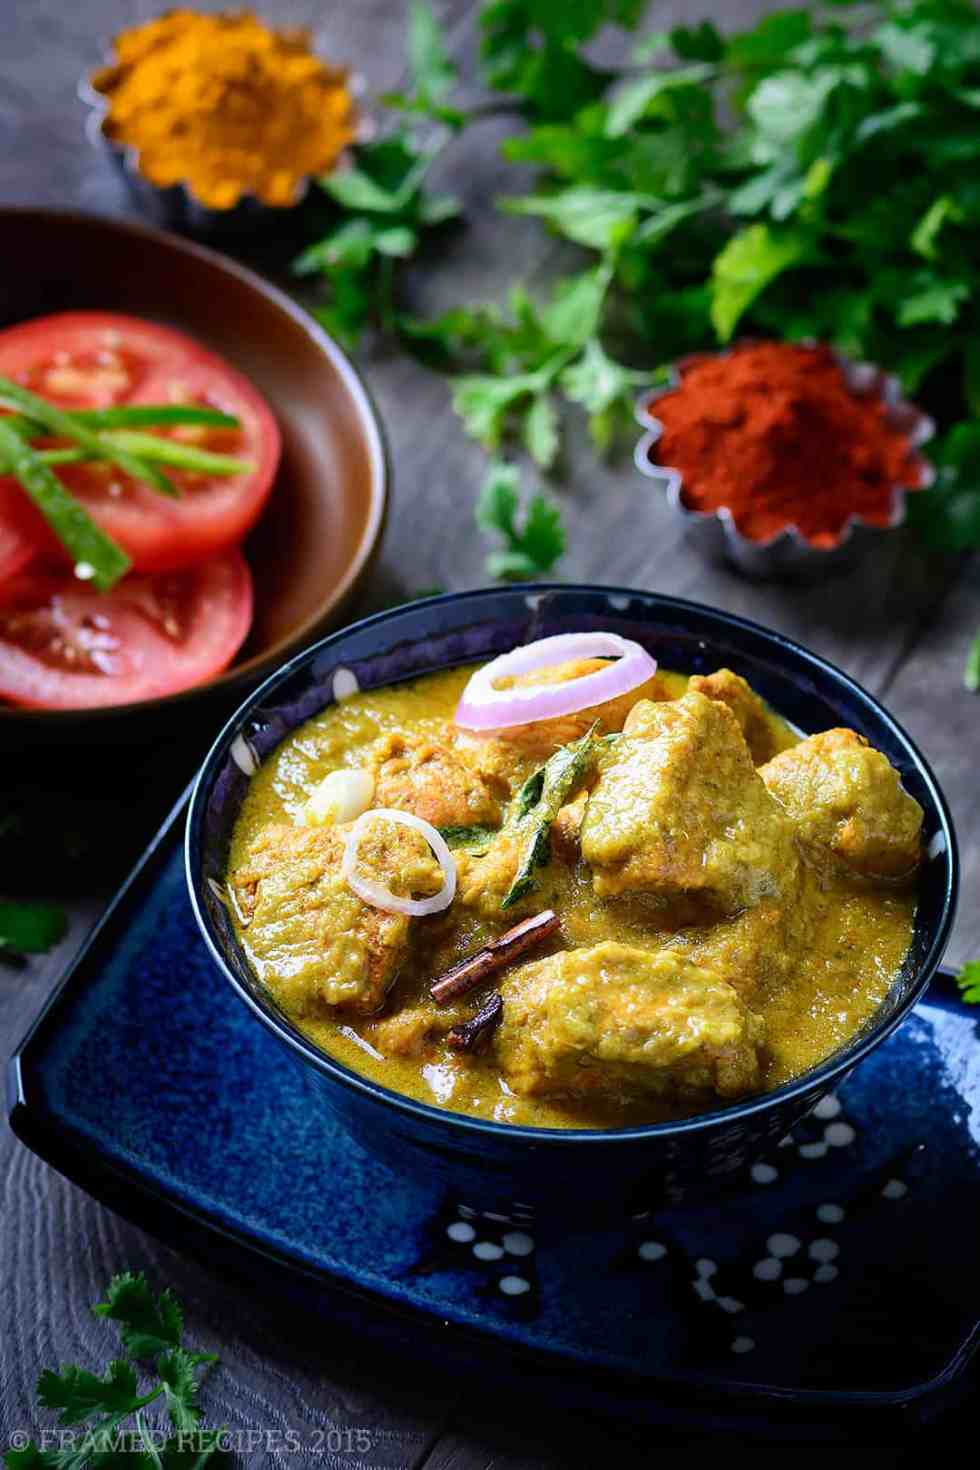 Cilantro_Chicken_Curry garnished with onion, served with tomato slices shown with red chilli powder and turmeric powder and cilantro in the background.